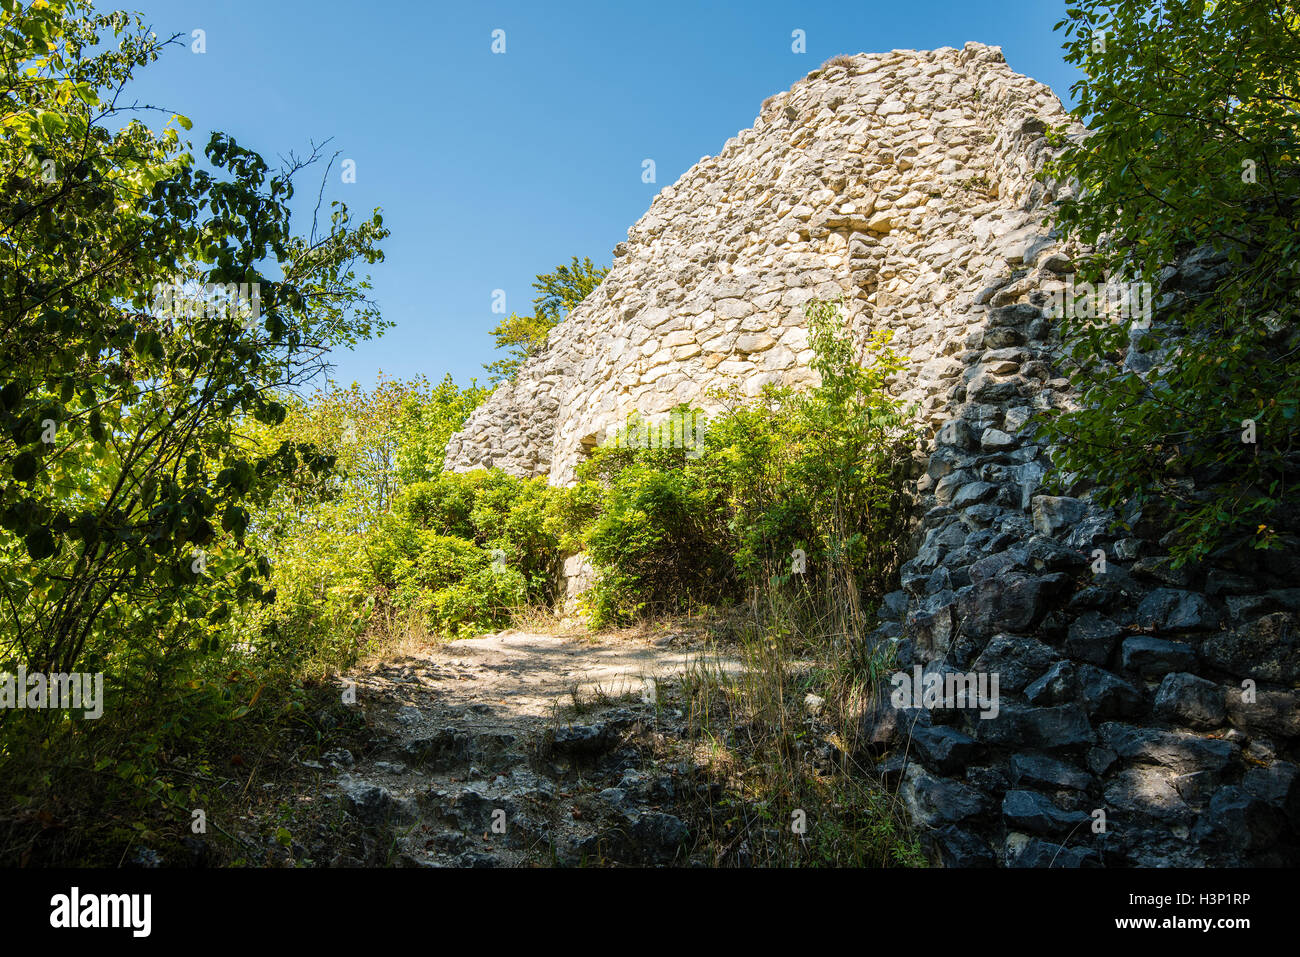 Ruins of castle in Swabian Alb - Stock Image